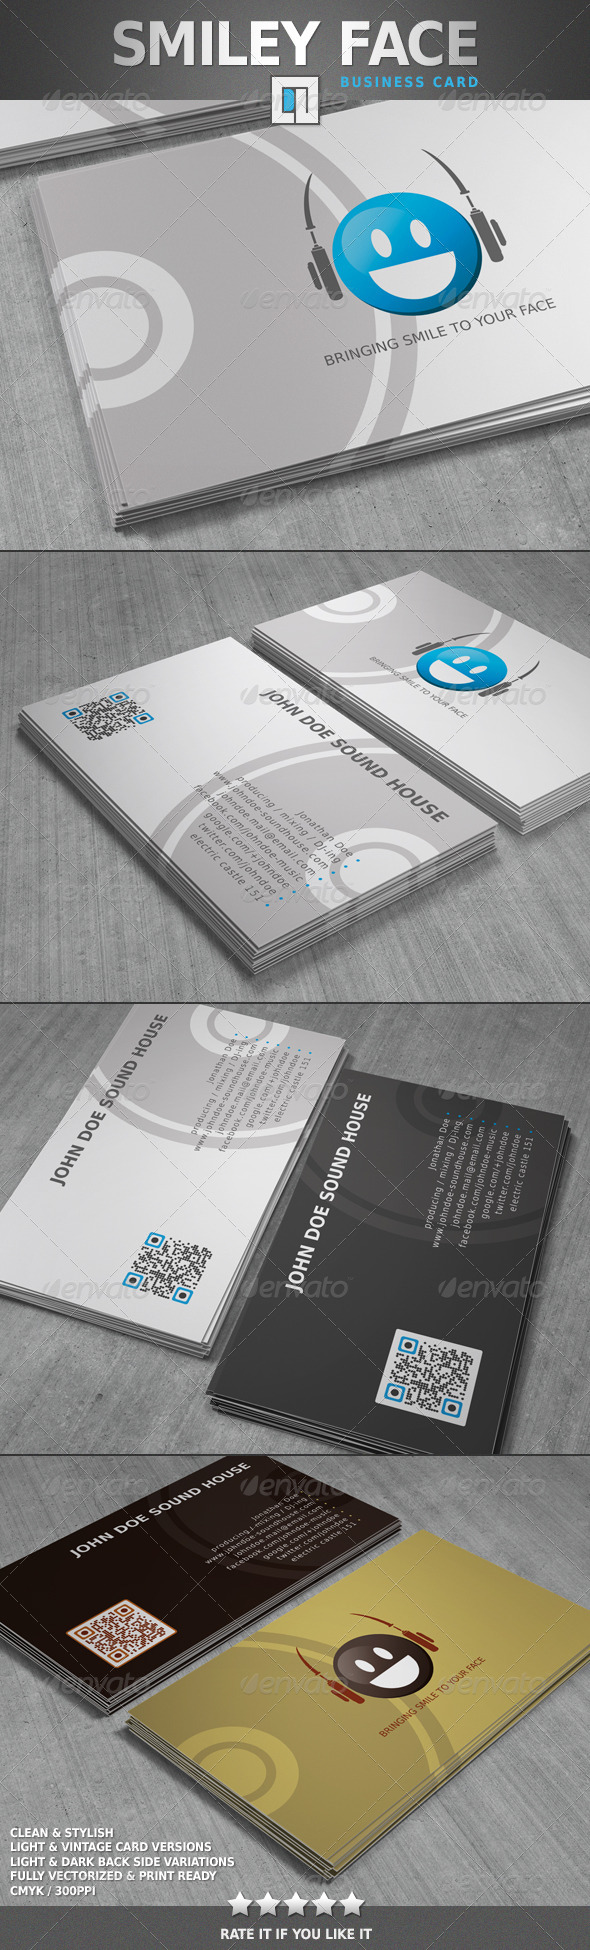 GraphicRiver Smiley Face Business Card 6462321